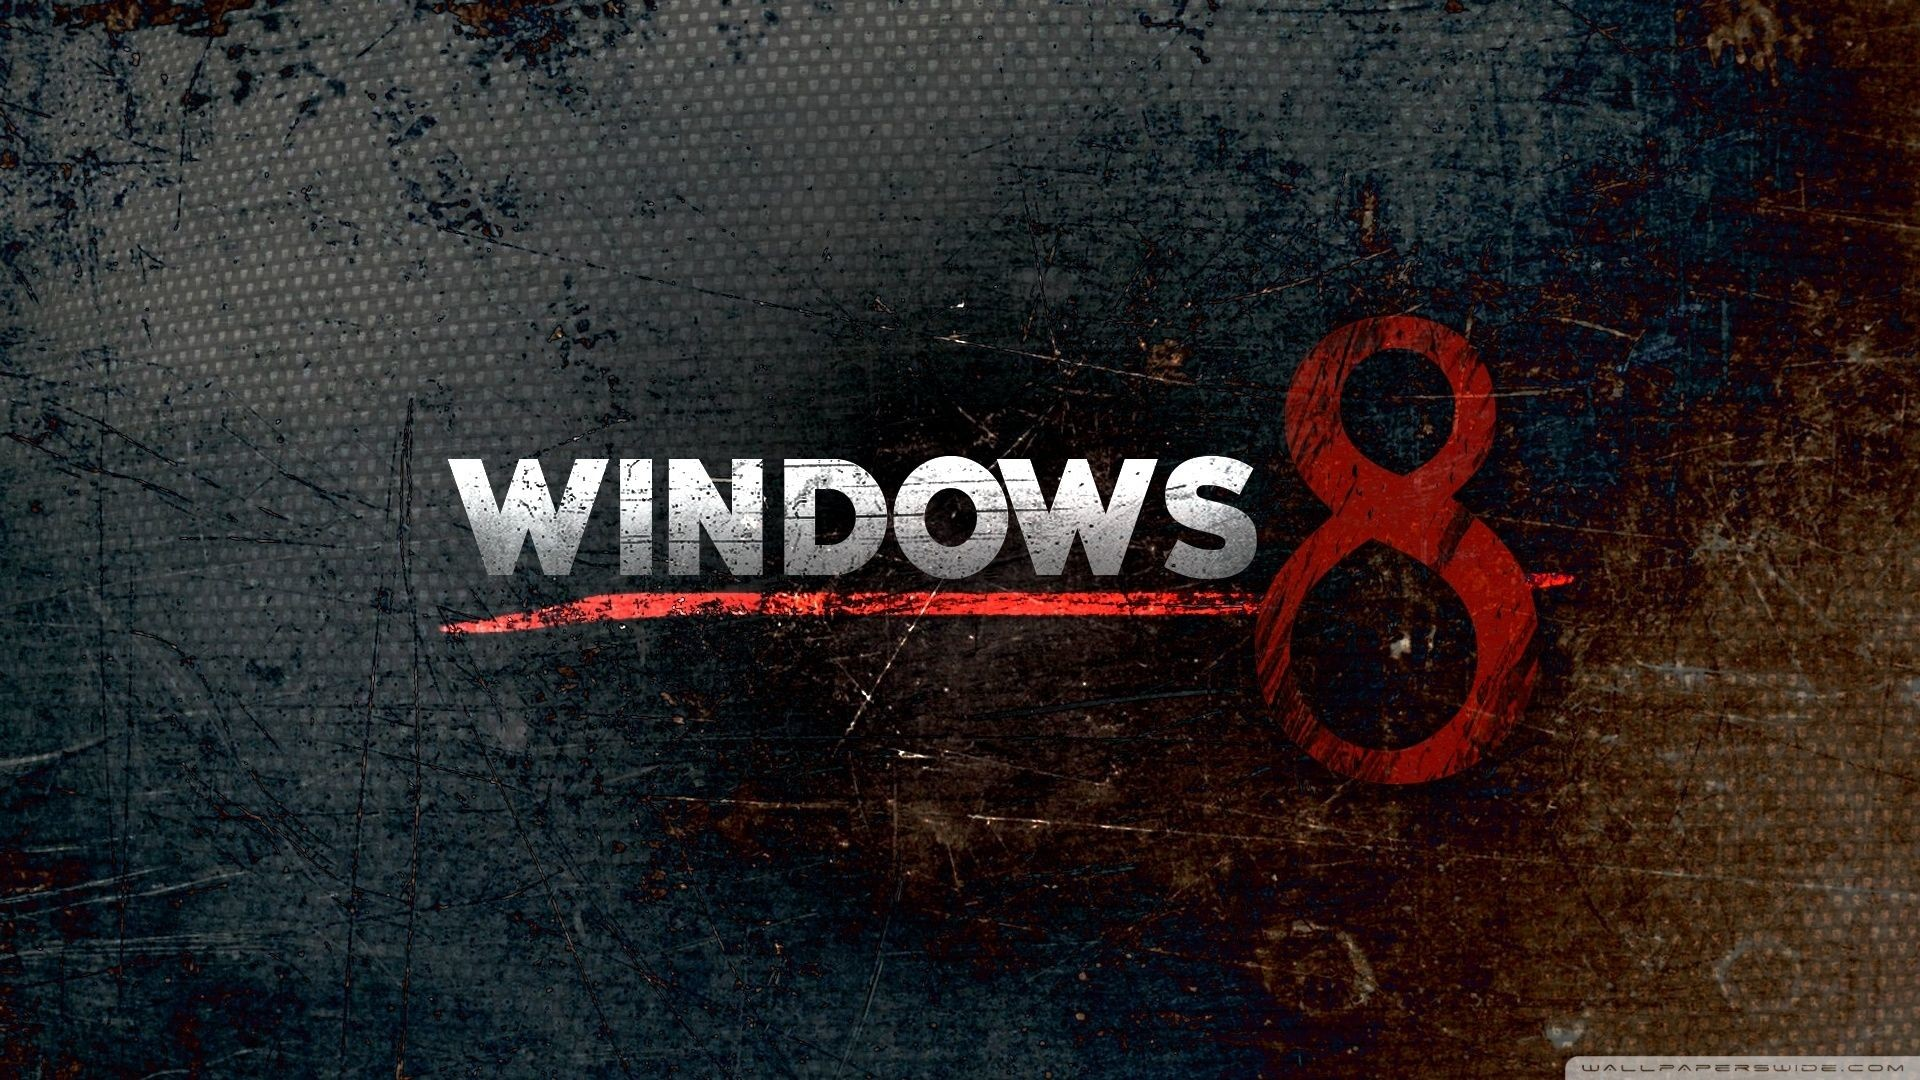 1920x1080 10 Top Windows 8 Hd Wallpapers FULL HD 1080p For PC Background